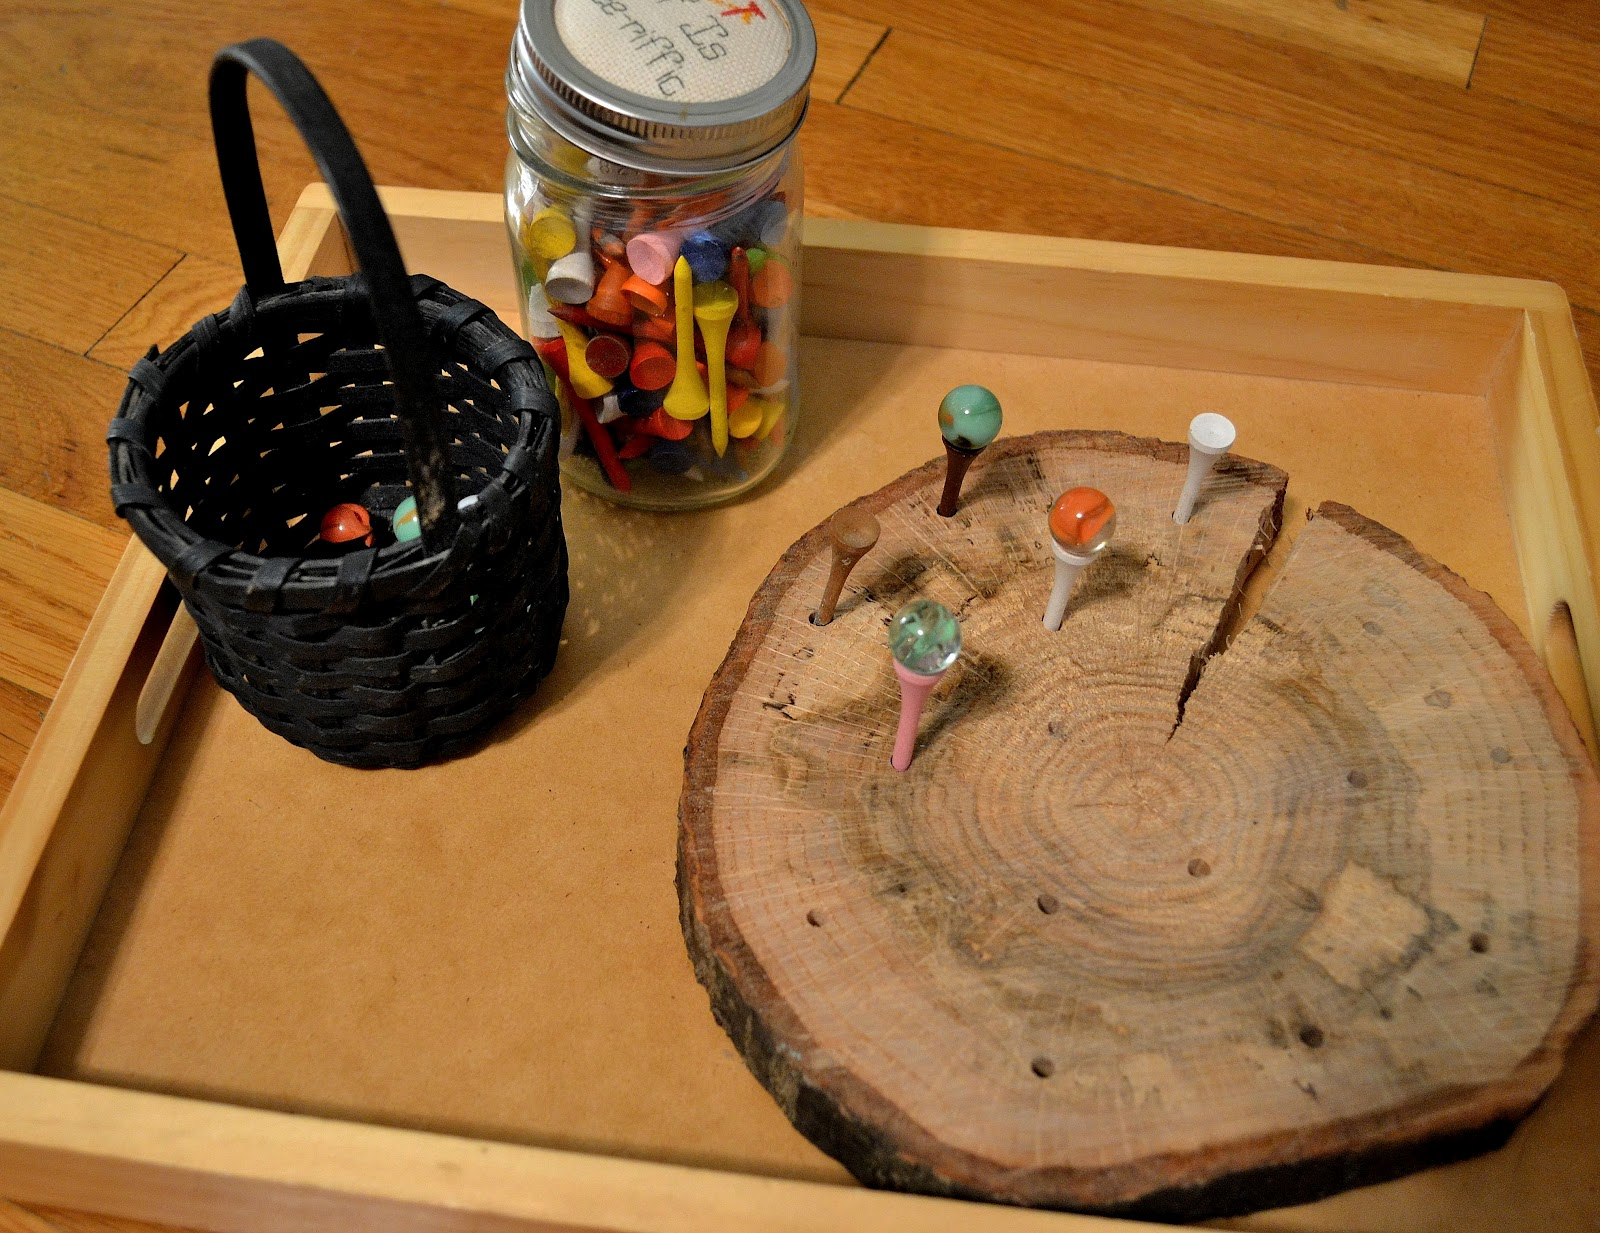 From The Hive: new preschool table activities